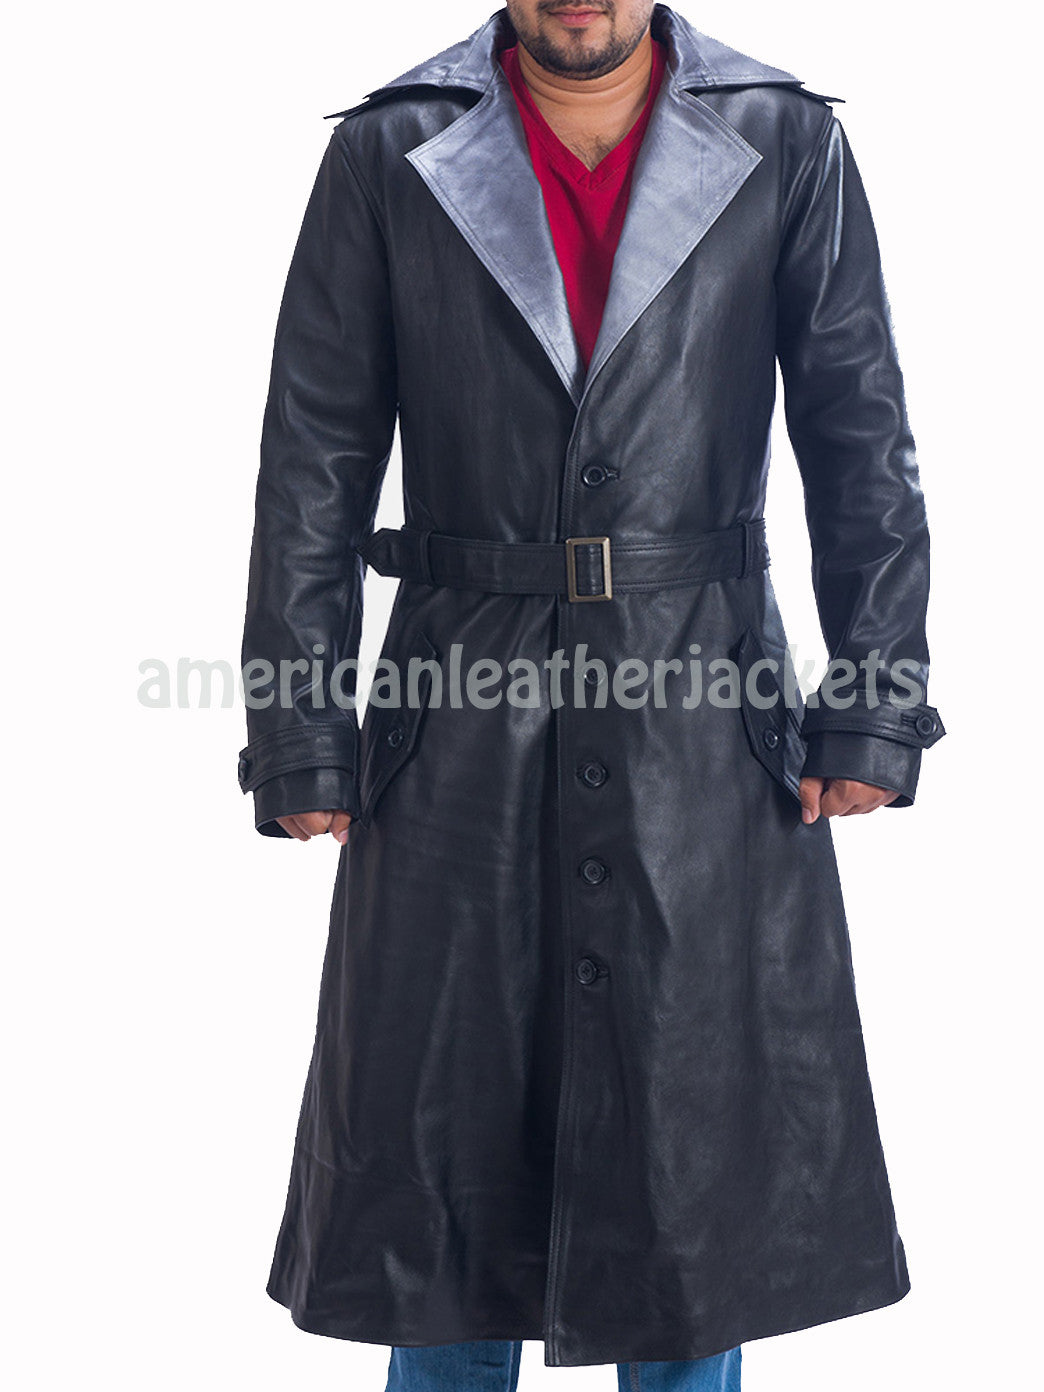 Notch Collar Men Leather Trench Coat